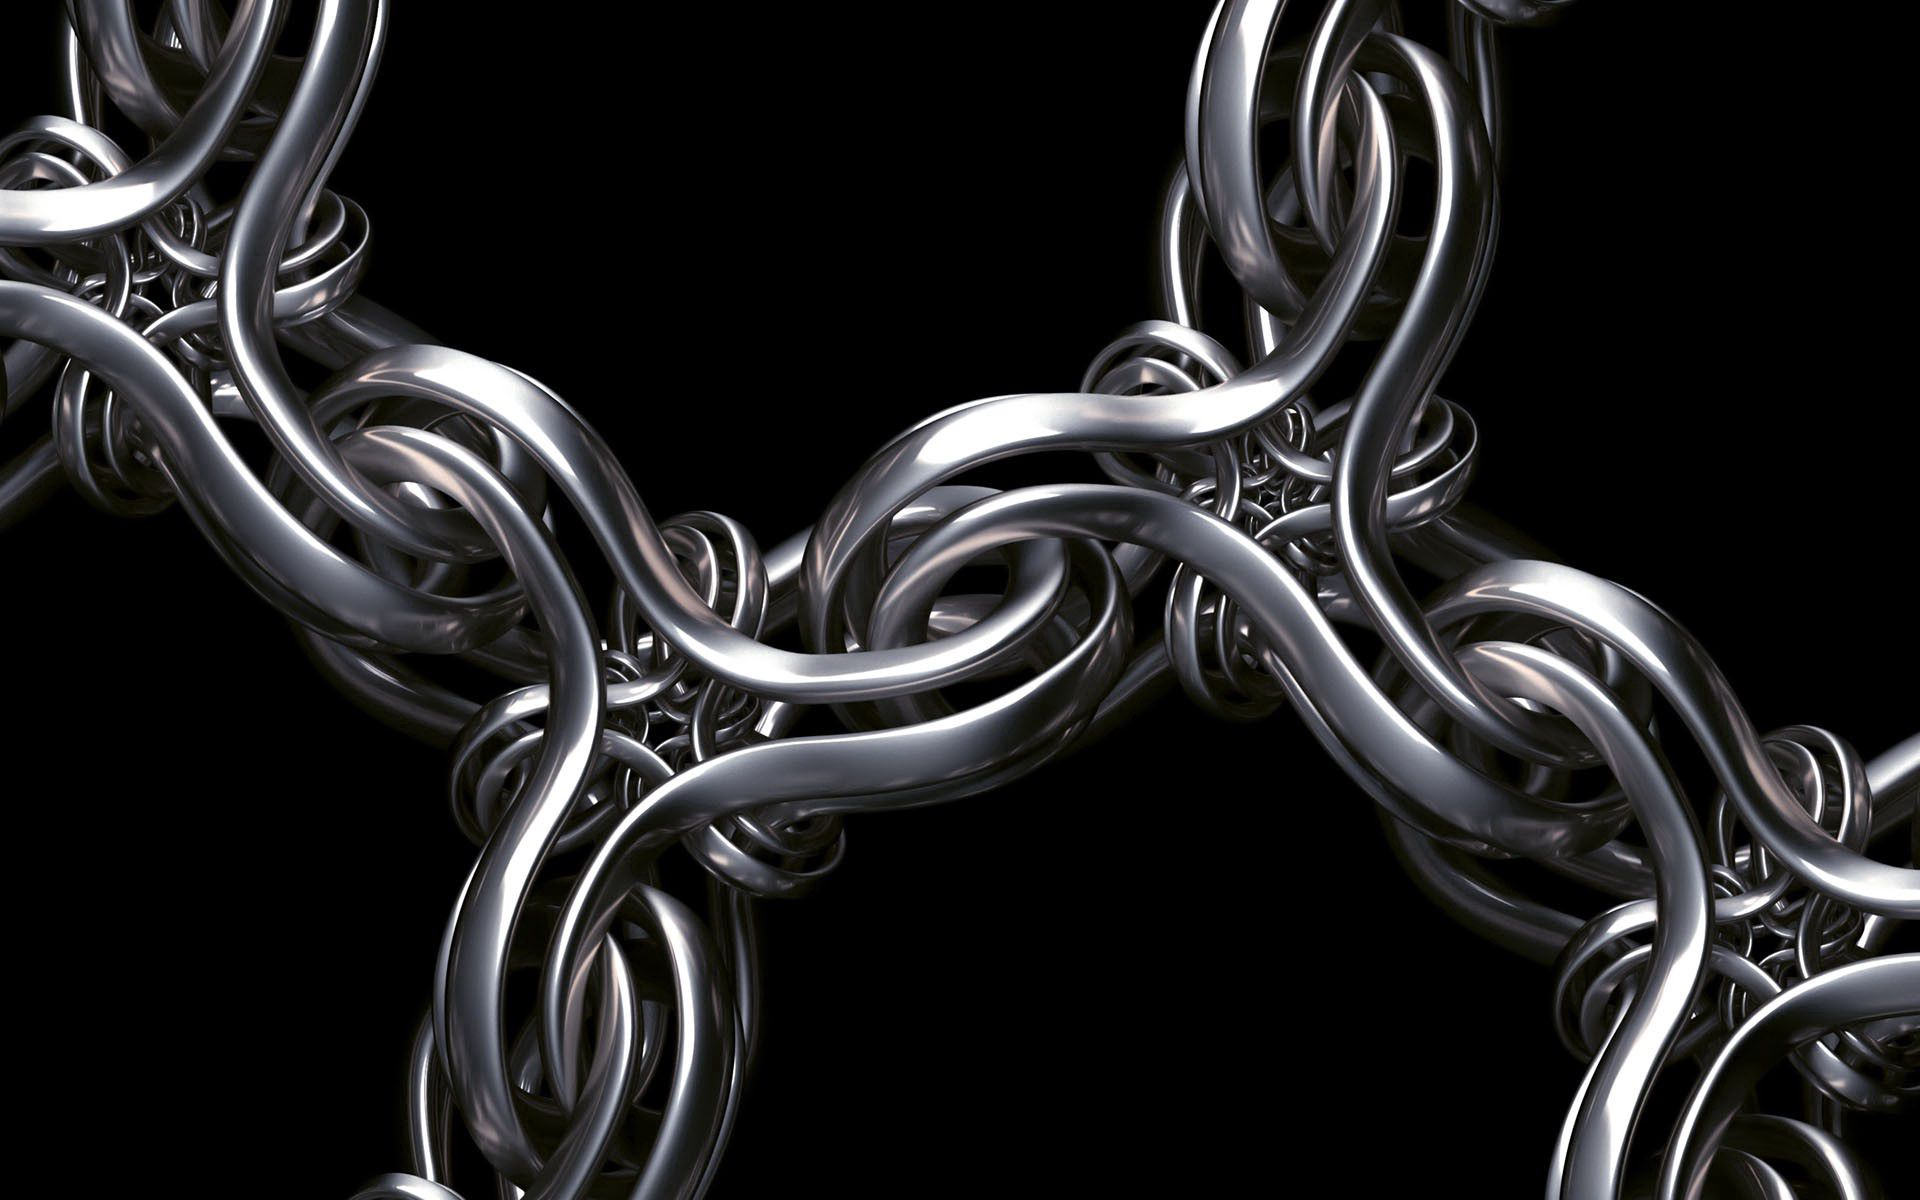 112762 download wallpaper 3D, Render, Chain, Weaving, Braiding, Silver, Serebo screensavers and pictures for free